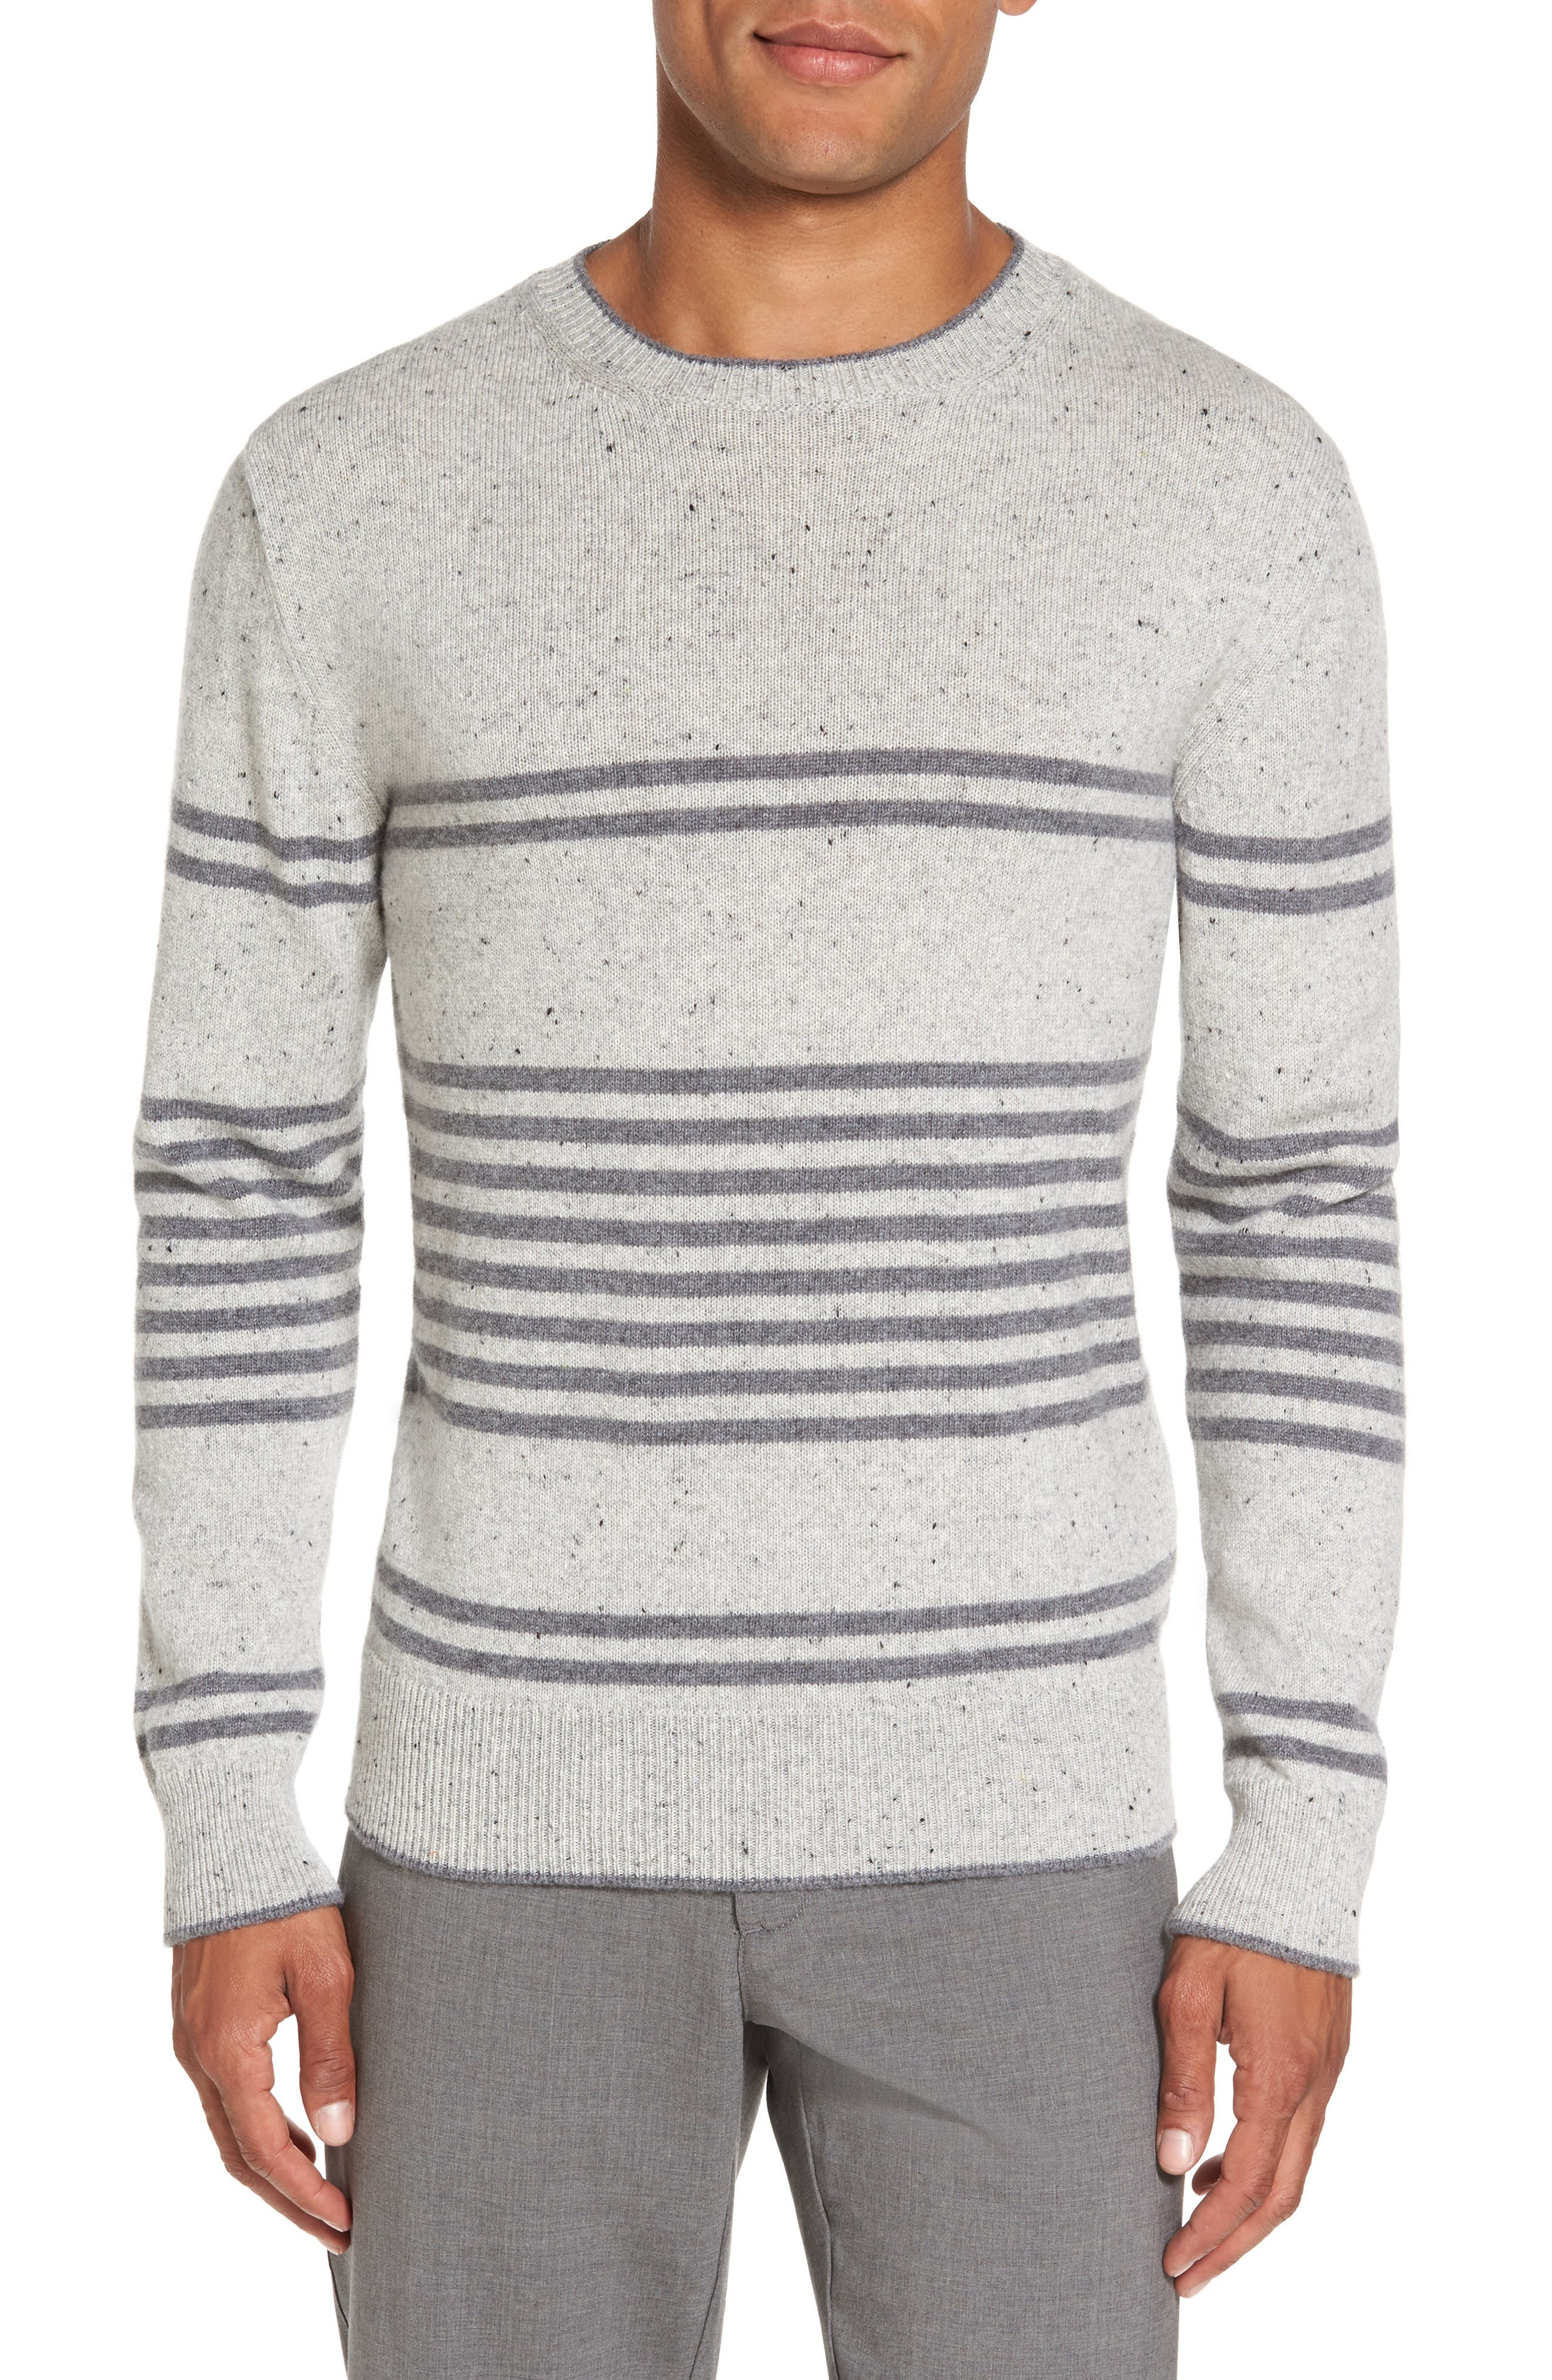 Donegal Stripe Cashmere Sweater,                         Main,                         color, Grey/ Grey